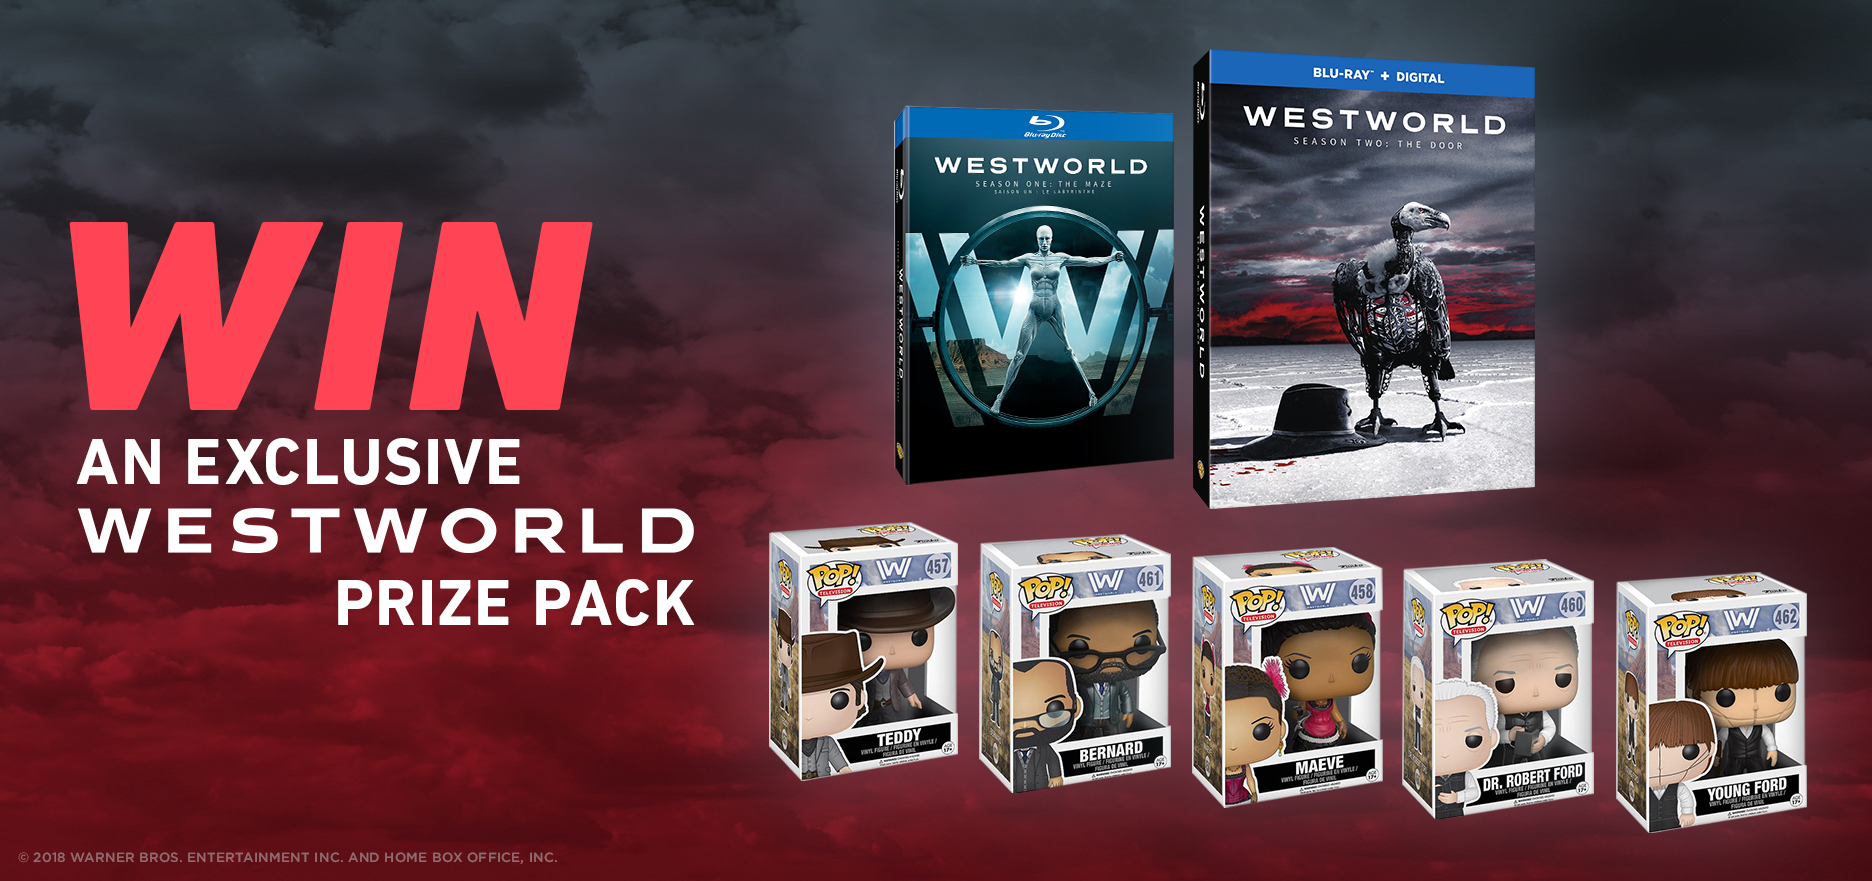 Win an exclusive Westworld prize pack